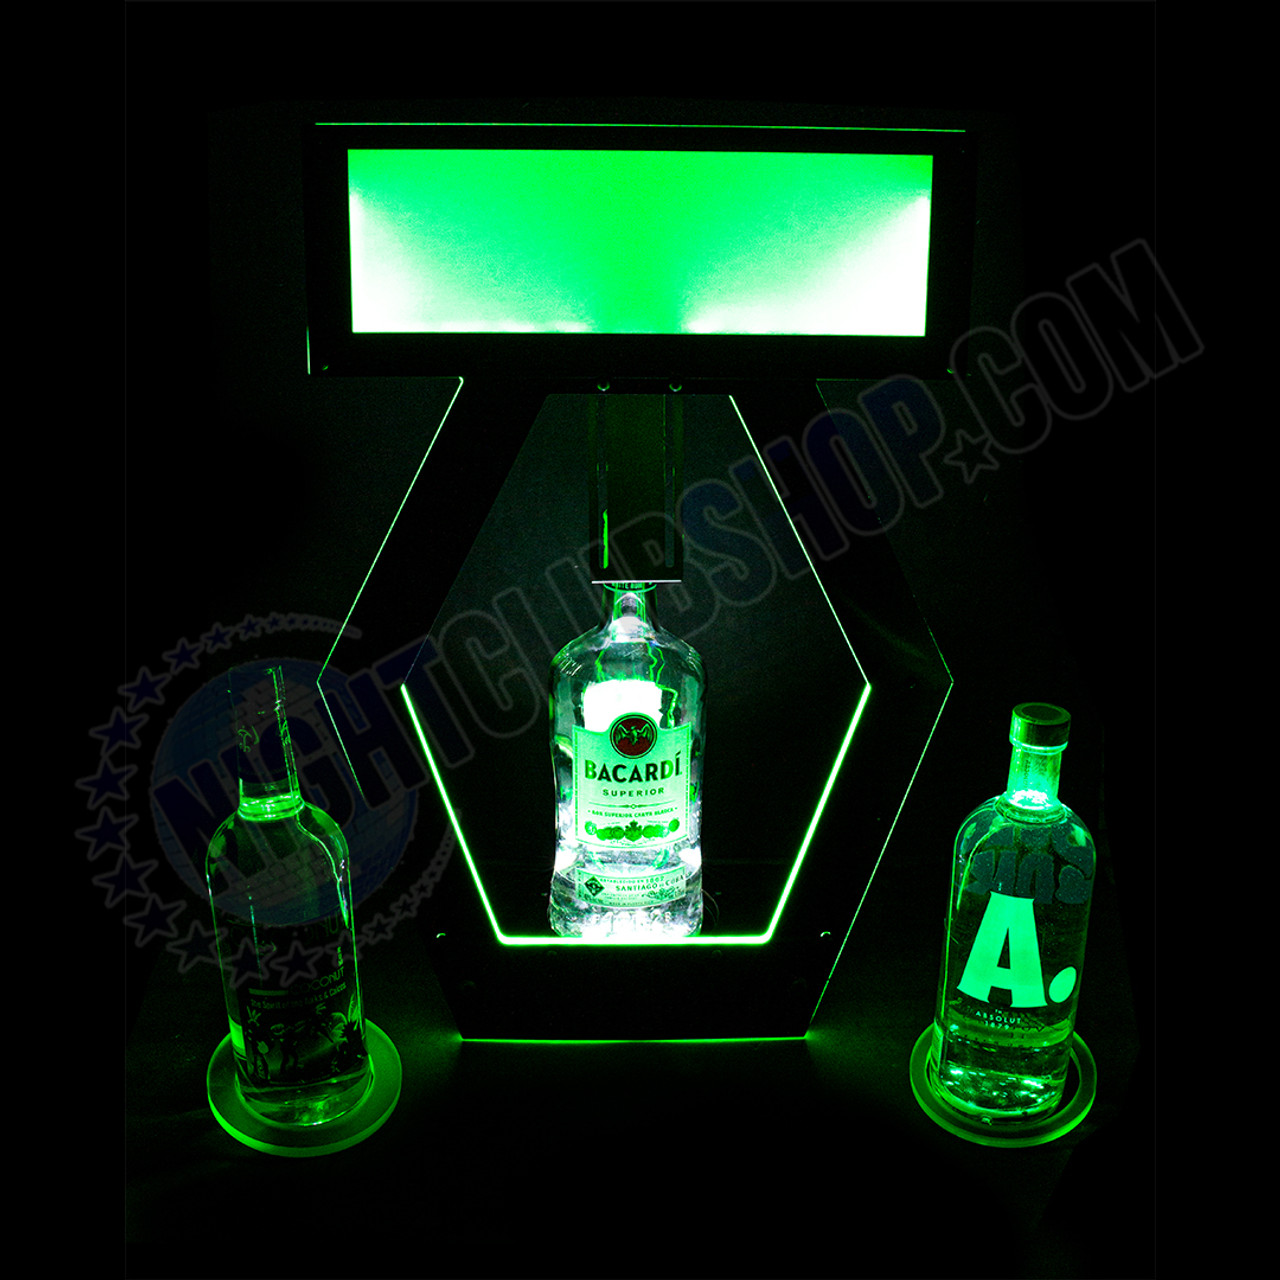 RF, LED, Remote, Controlled, DMX, RGB, Bottle, Presenter, Universal, Ring, system, glow, Bottle Presentation Table delivery, Super bright, DMXR, Branding, Customizable, Interchangeable message board